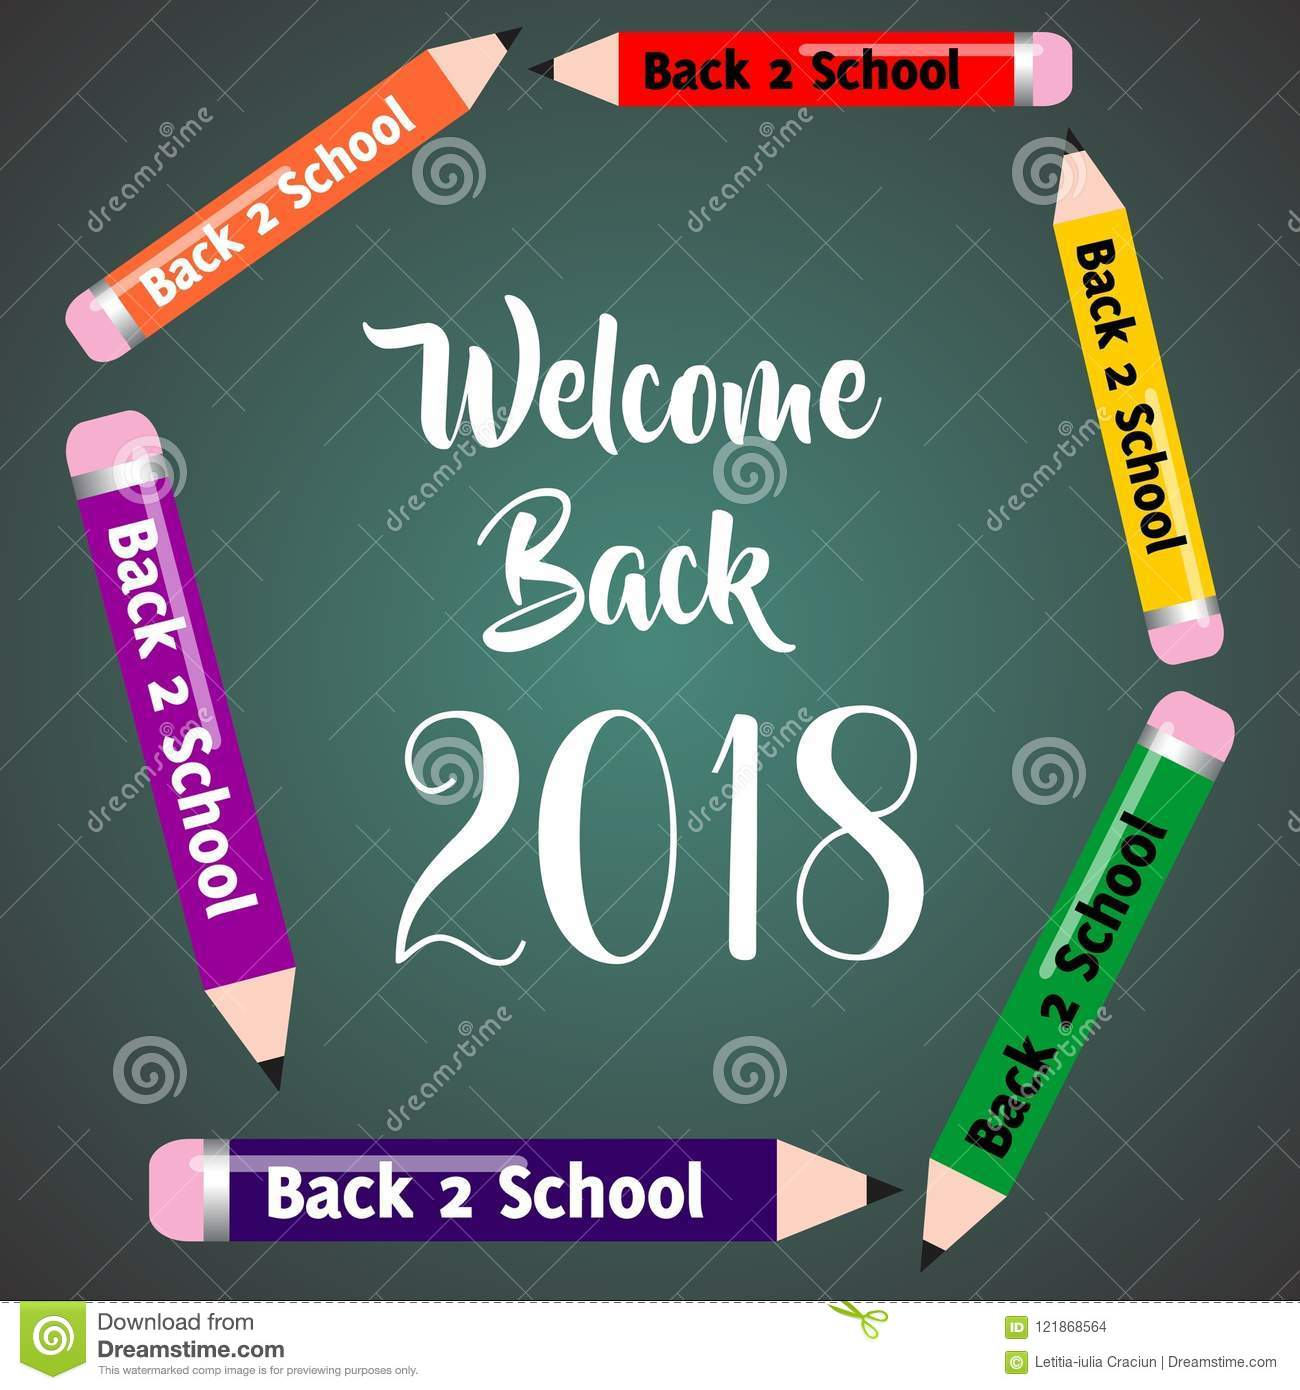 Welcome Back to School 2018 Cute Banner Invitation Card Poster